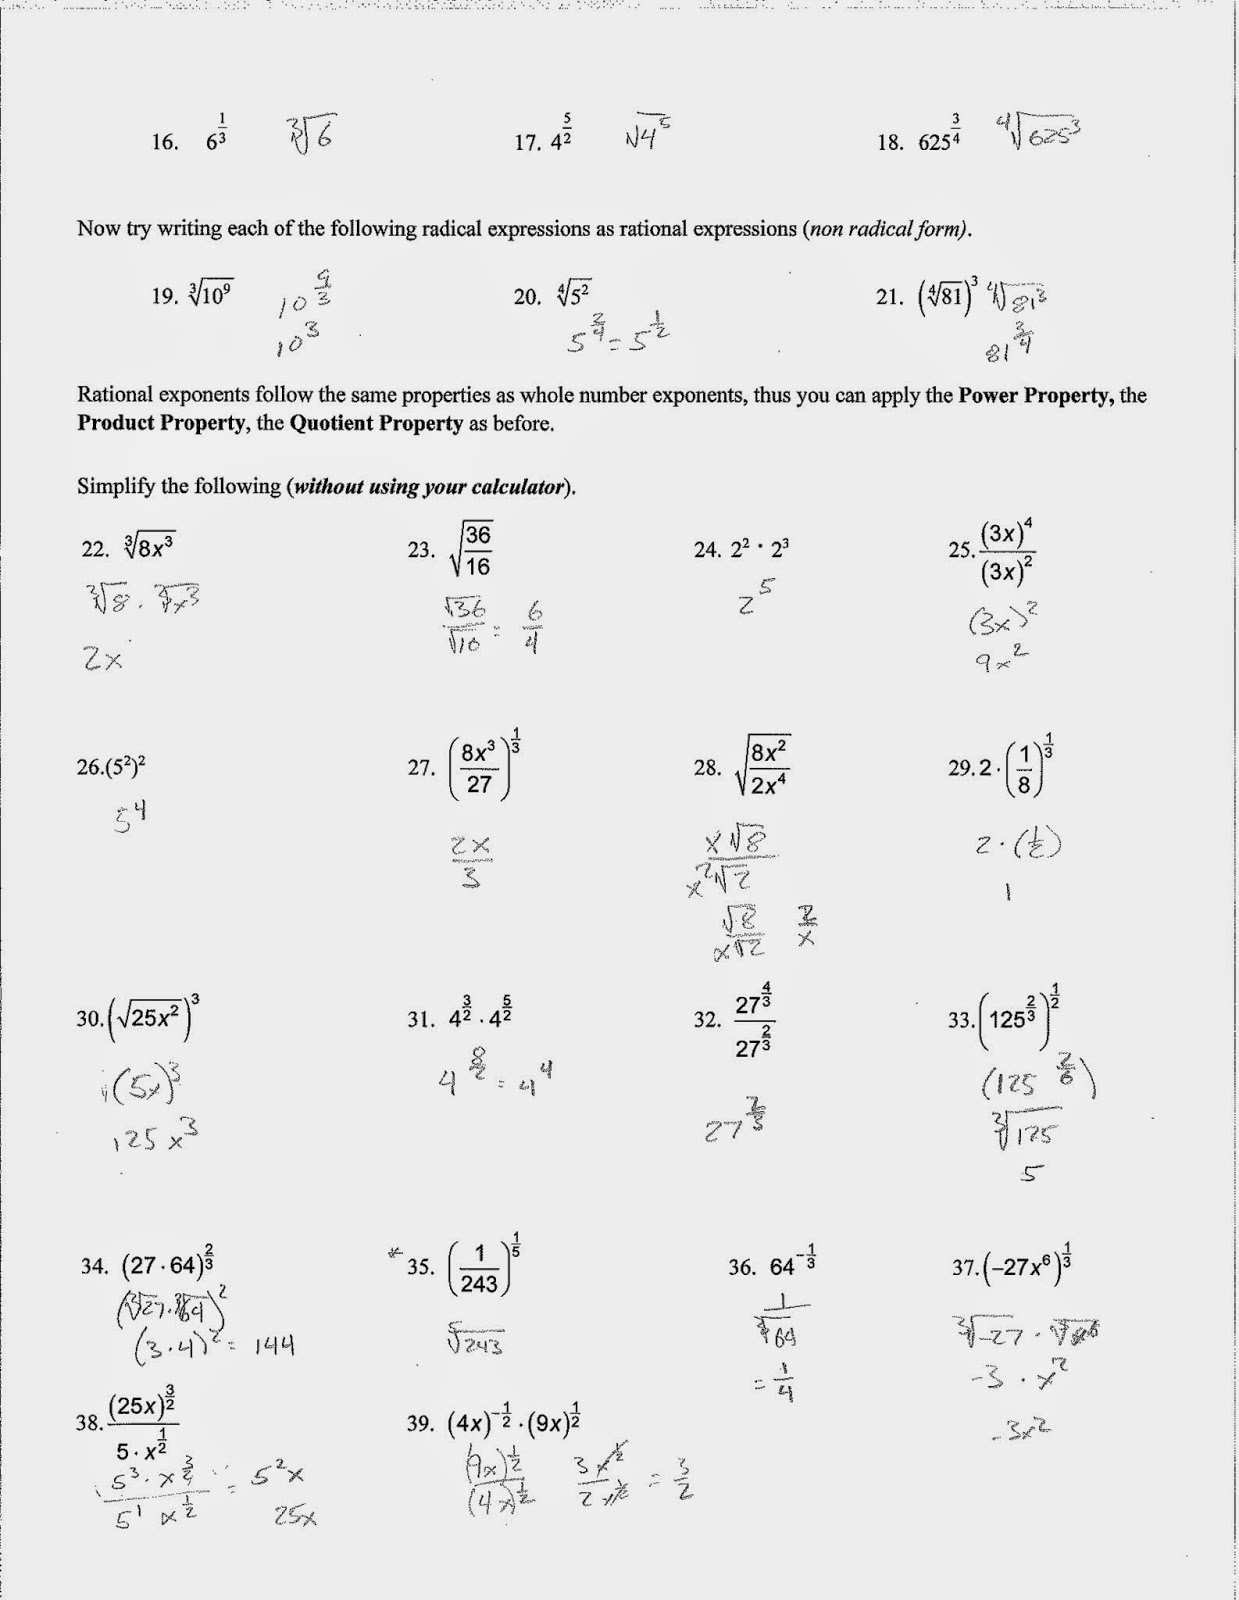 Simplifying Radicals Worksheet Algebra 1 New Simplifying Radical Expressions Worksheet Algebra 1